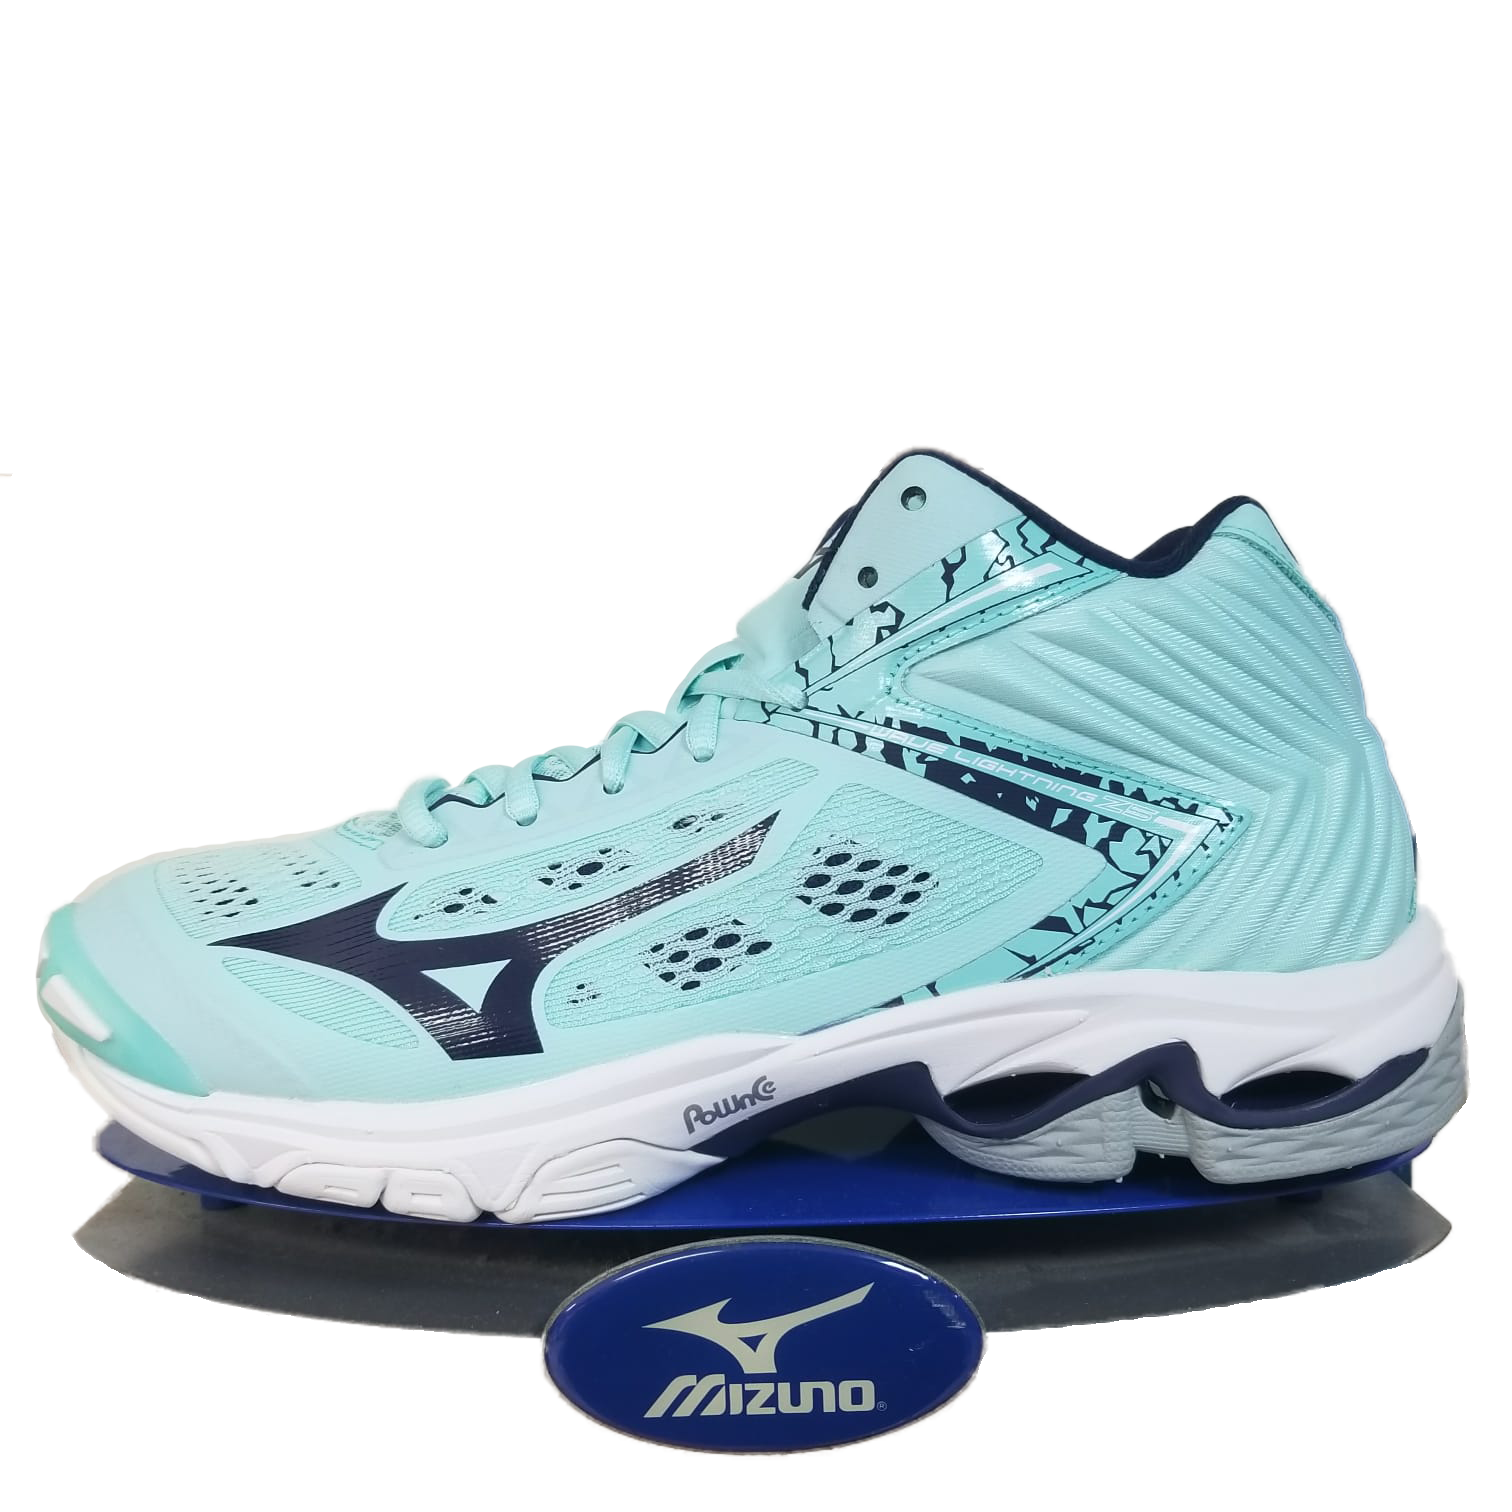 Mizuno Wave lumièrening Z5 Mid Cut Homme Taille Unisexe Chaussures pour femme Turquoise